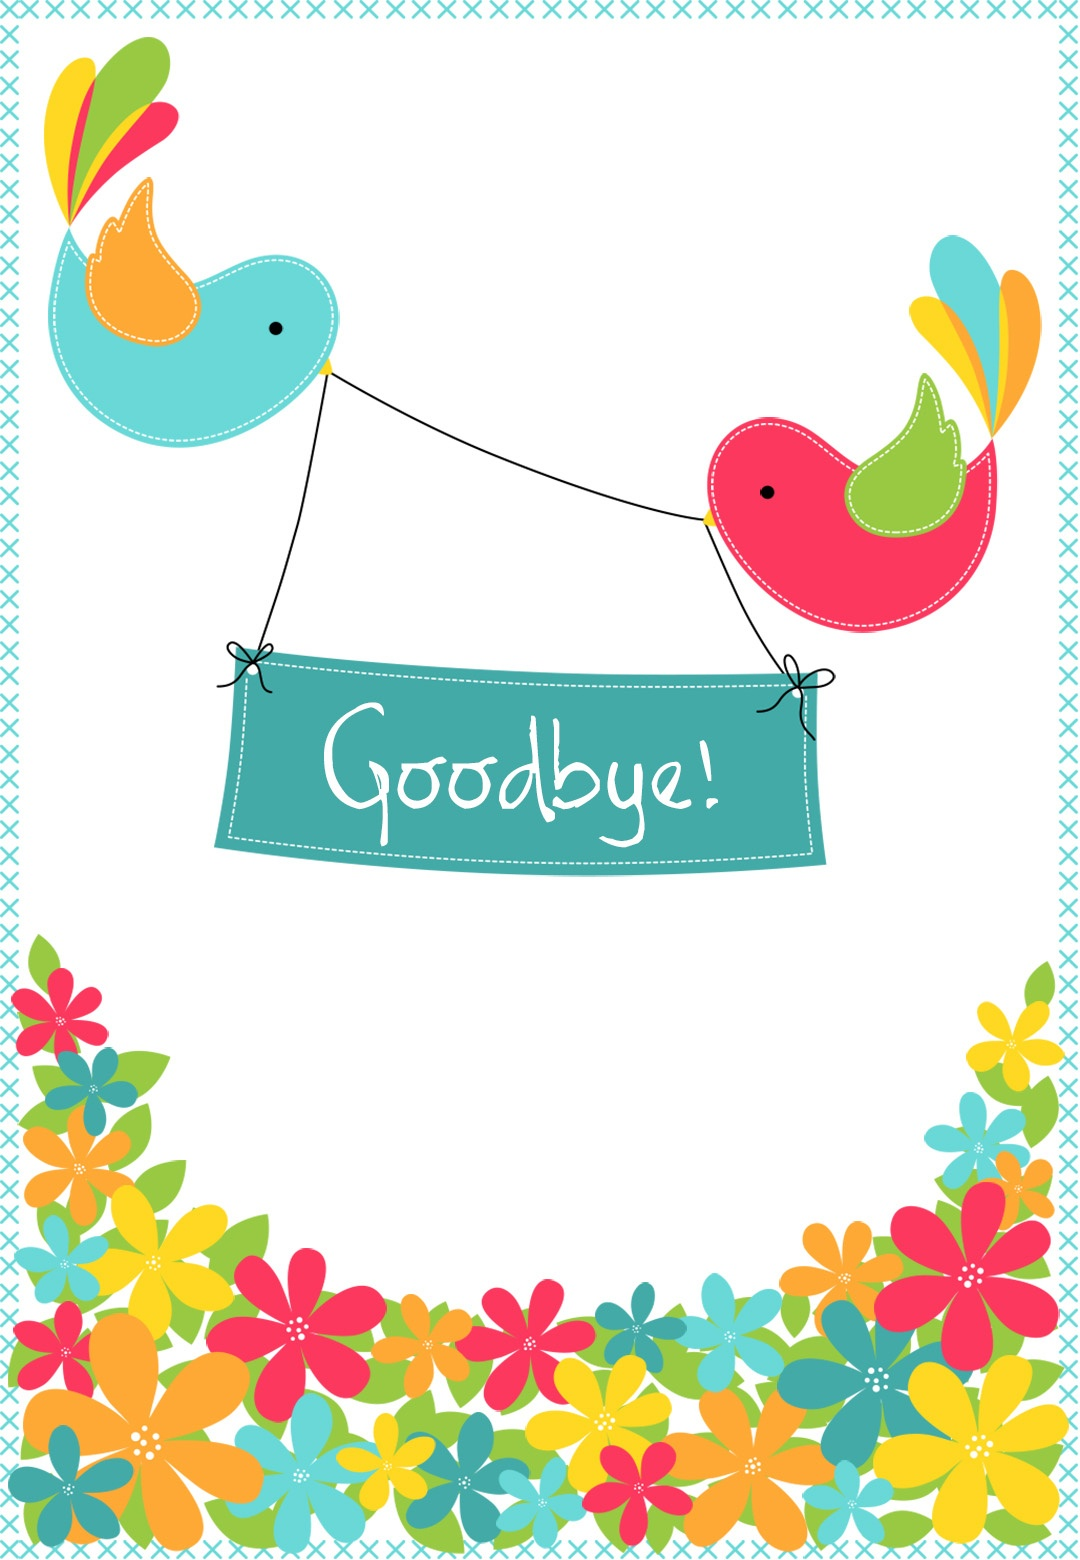 Goodbye From Your Colleagues - Good Luck Card (Free) | Greetings Island - We Will Miss You Cards For Coworker Printable Free